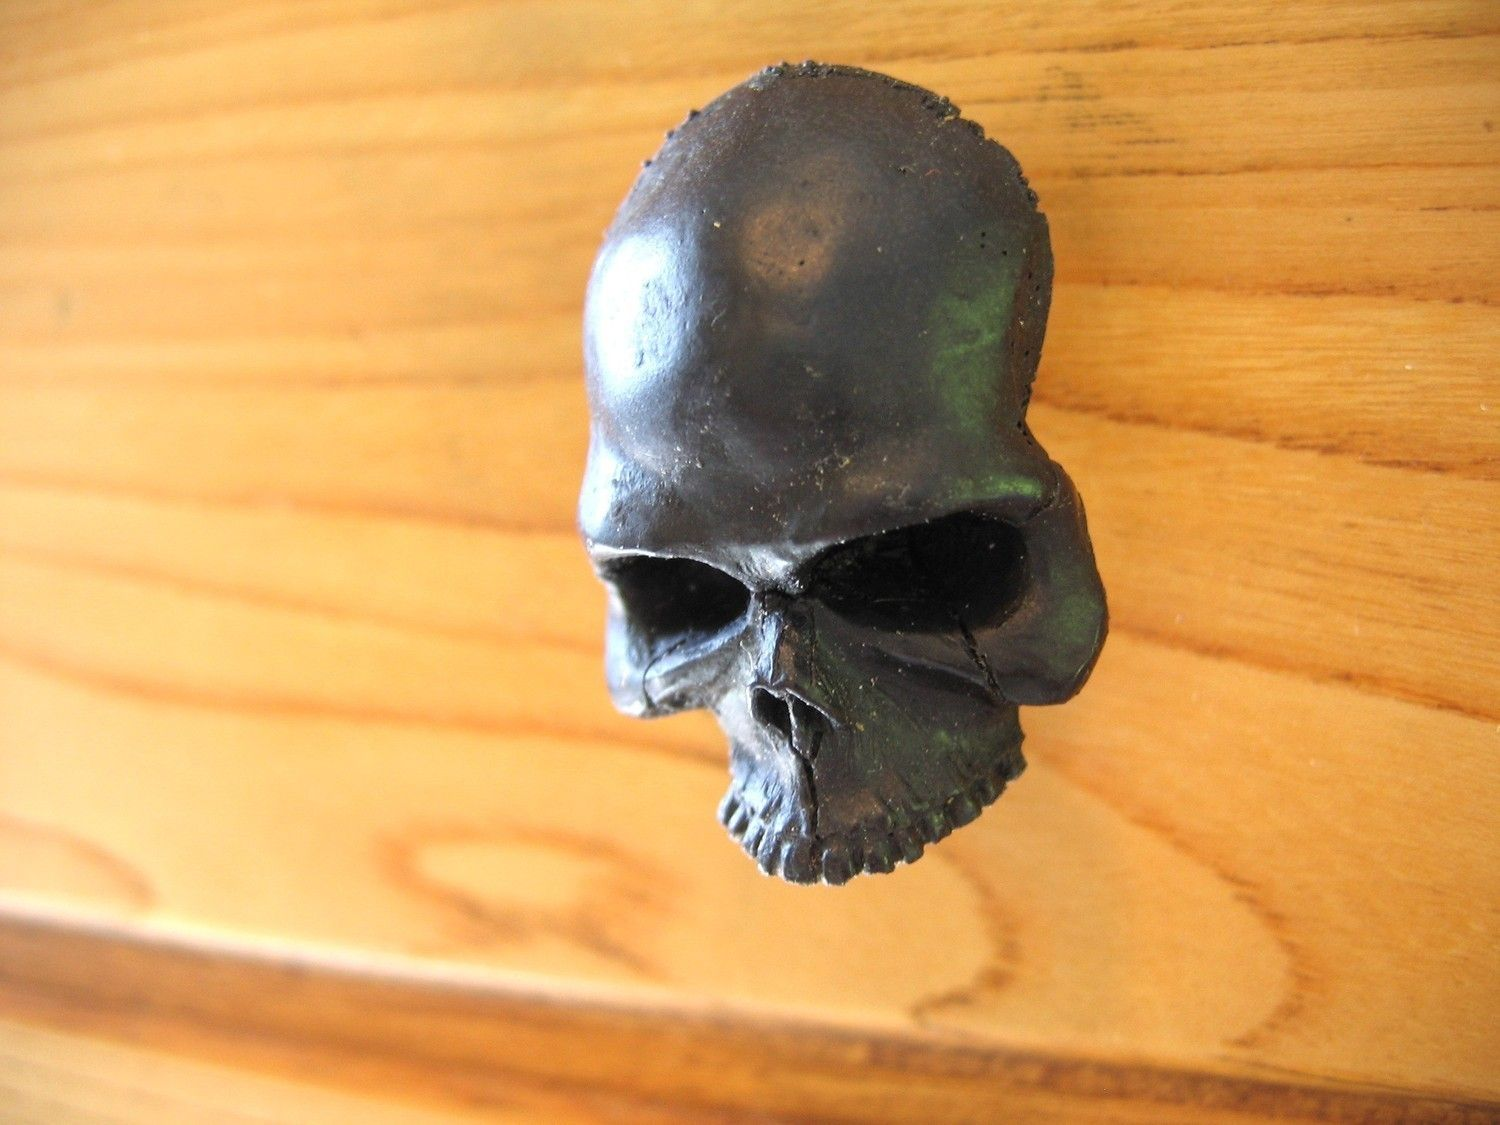 Black Human Skull Cabinet Knob Drawer Pull Hardware By Mrd74